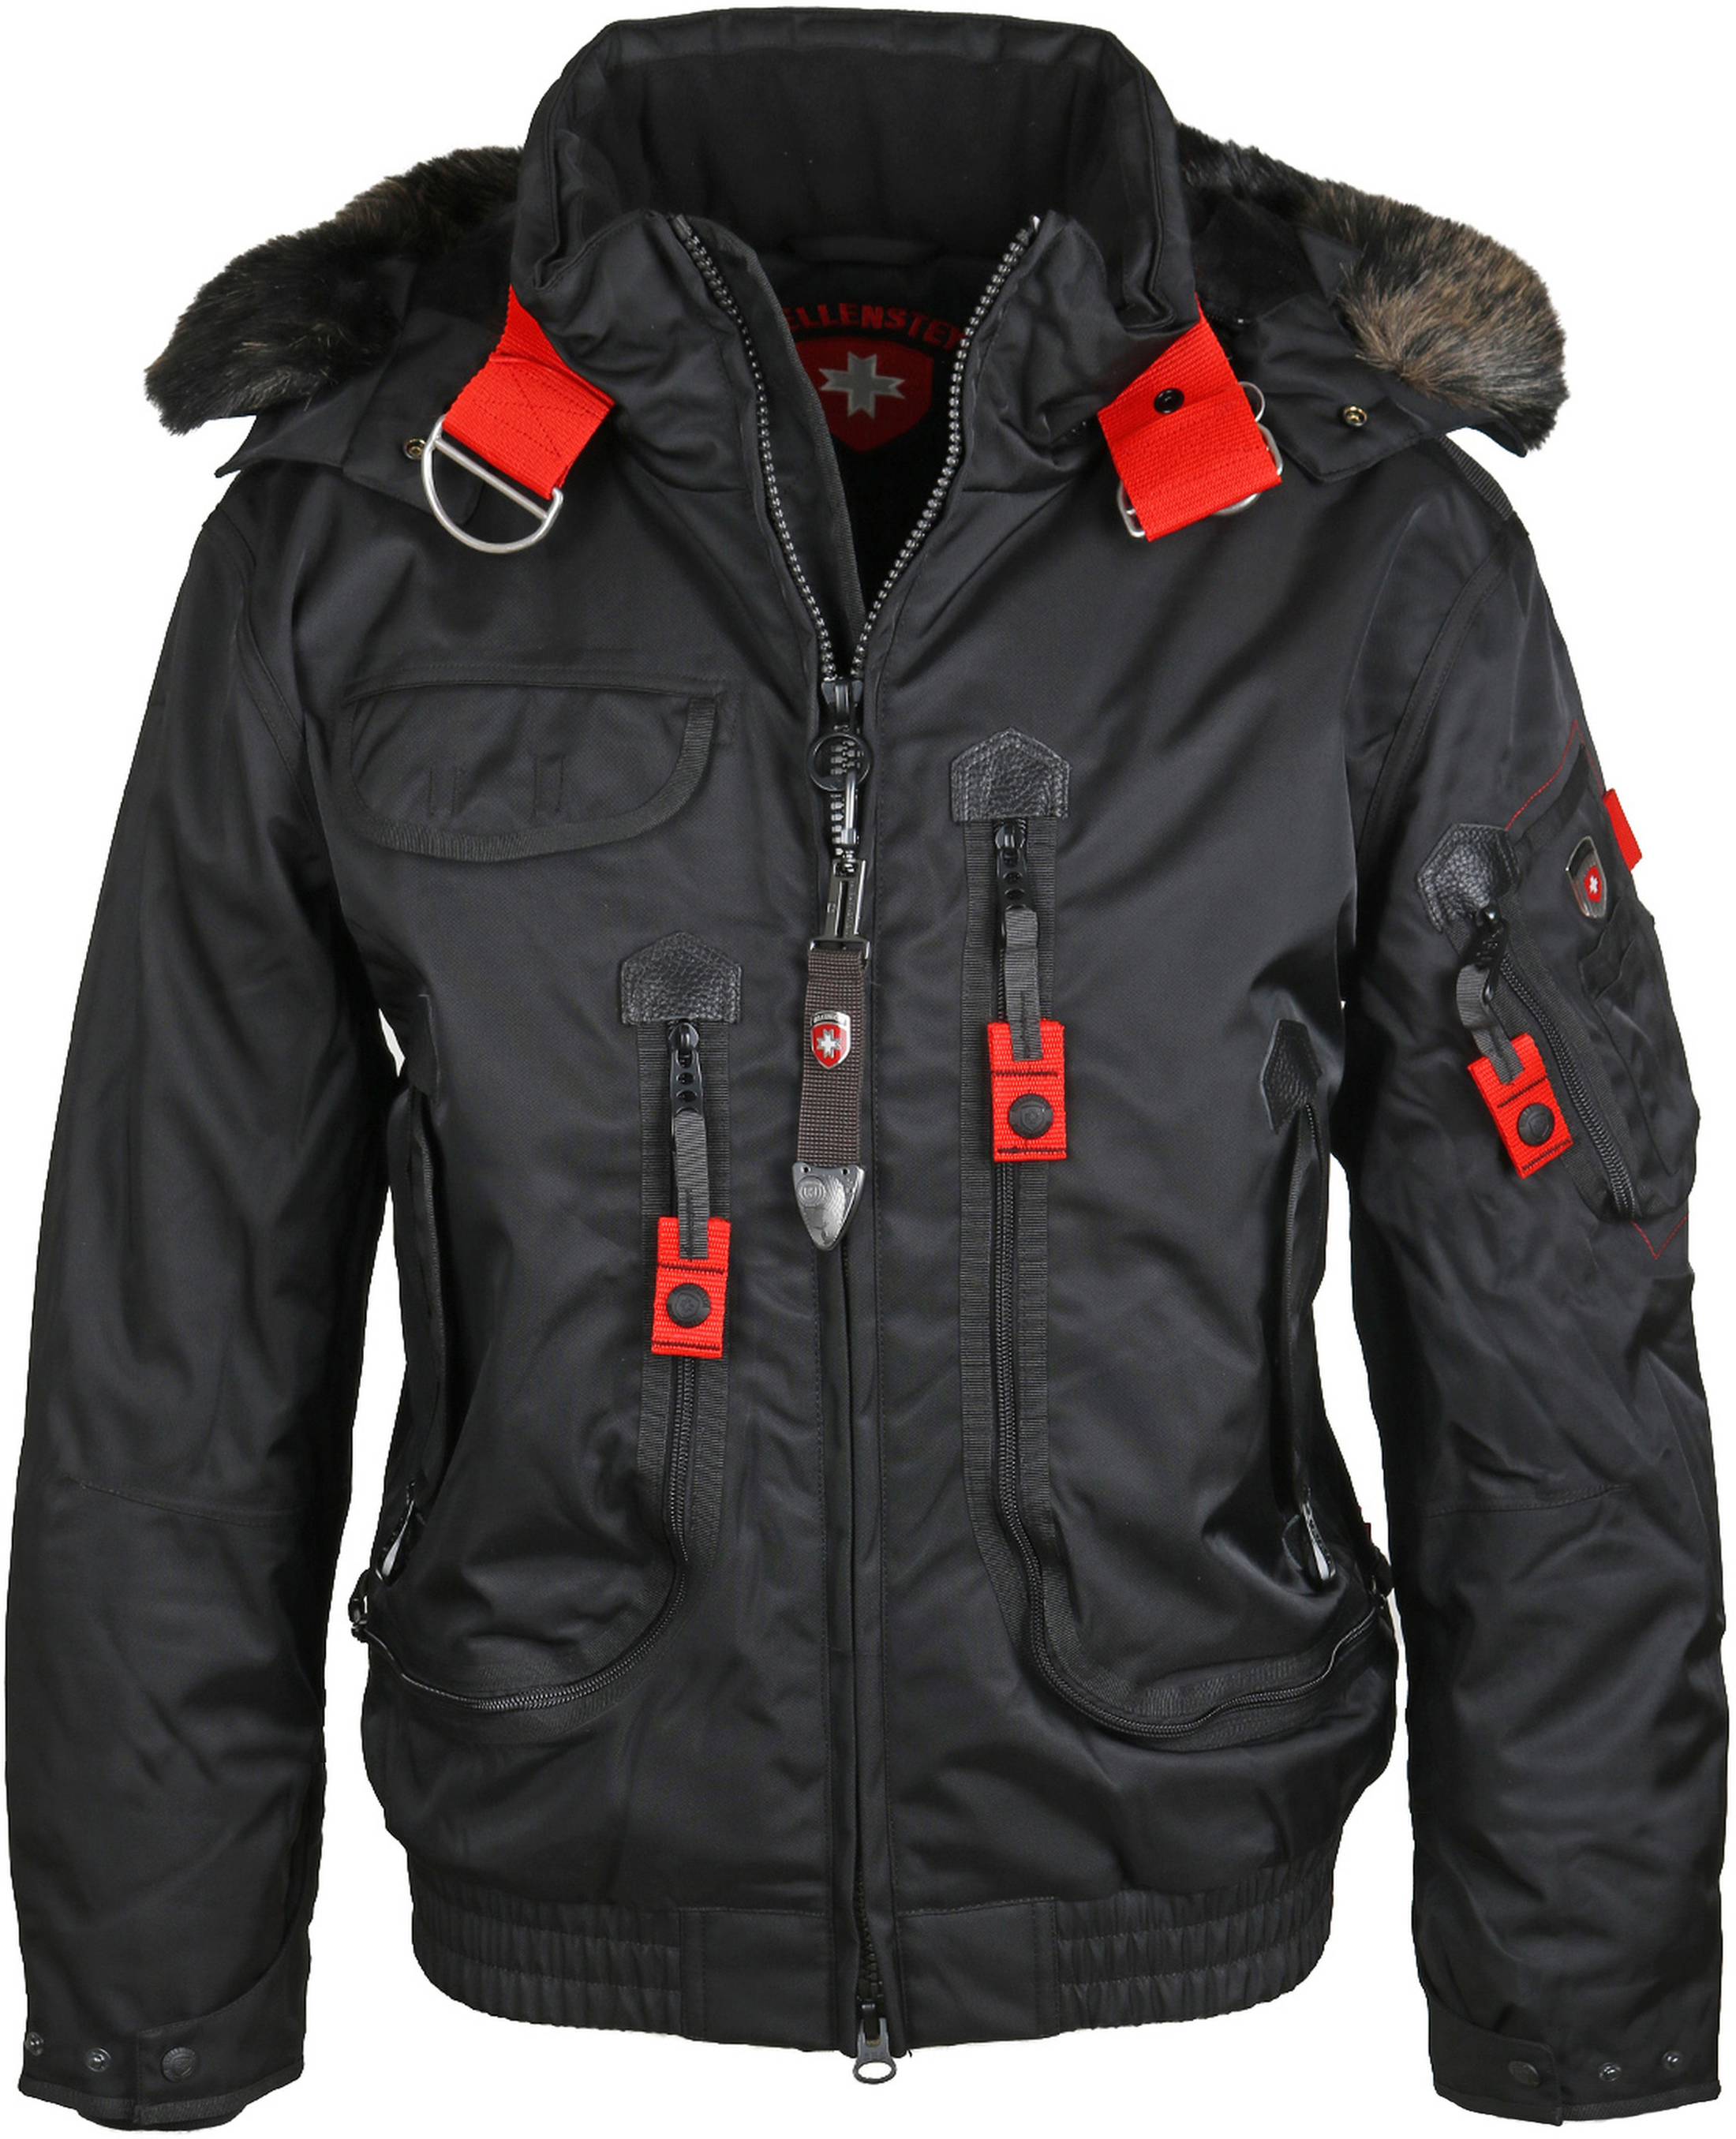 Wellensteyn Rescue Jacket Schwarz foto 0